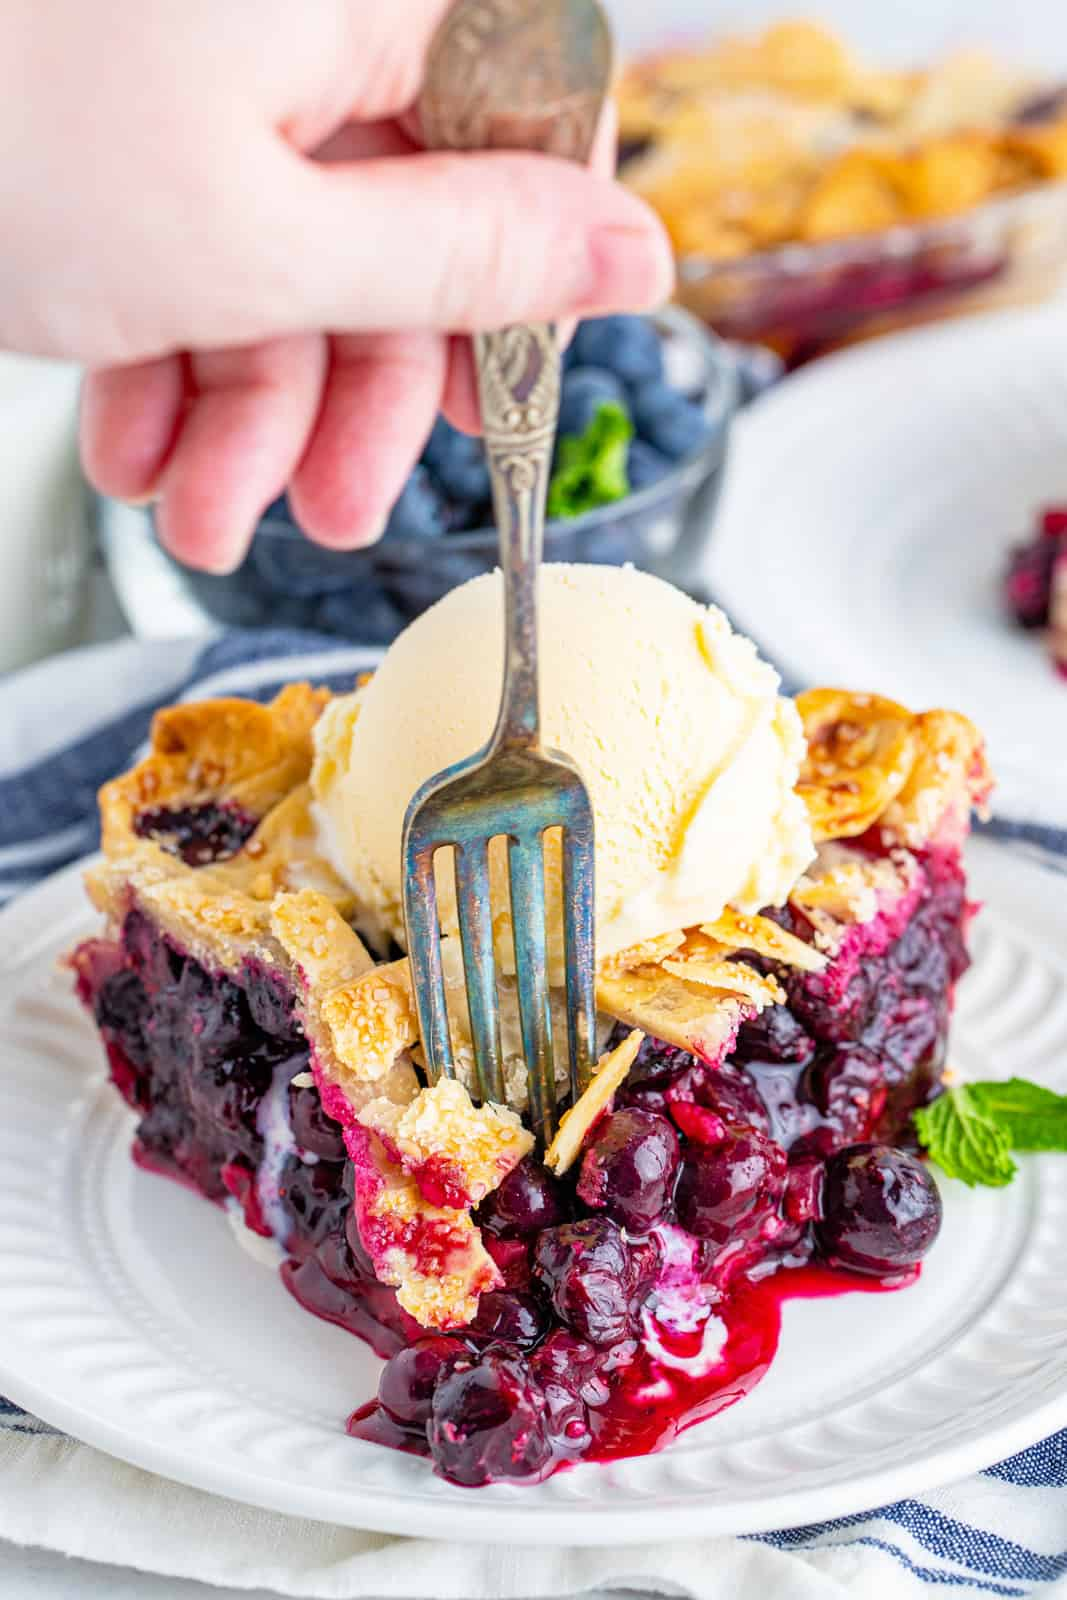 Fork going into Blueberry Pie Recipe